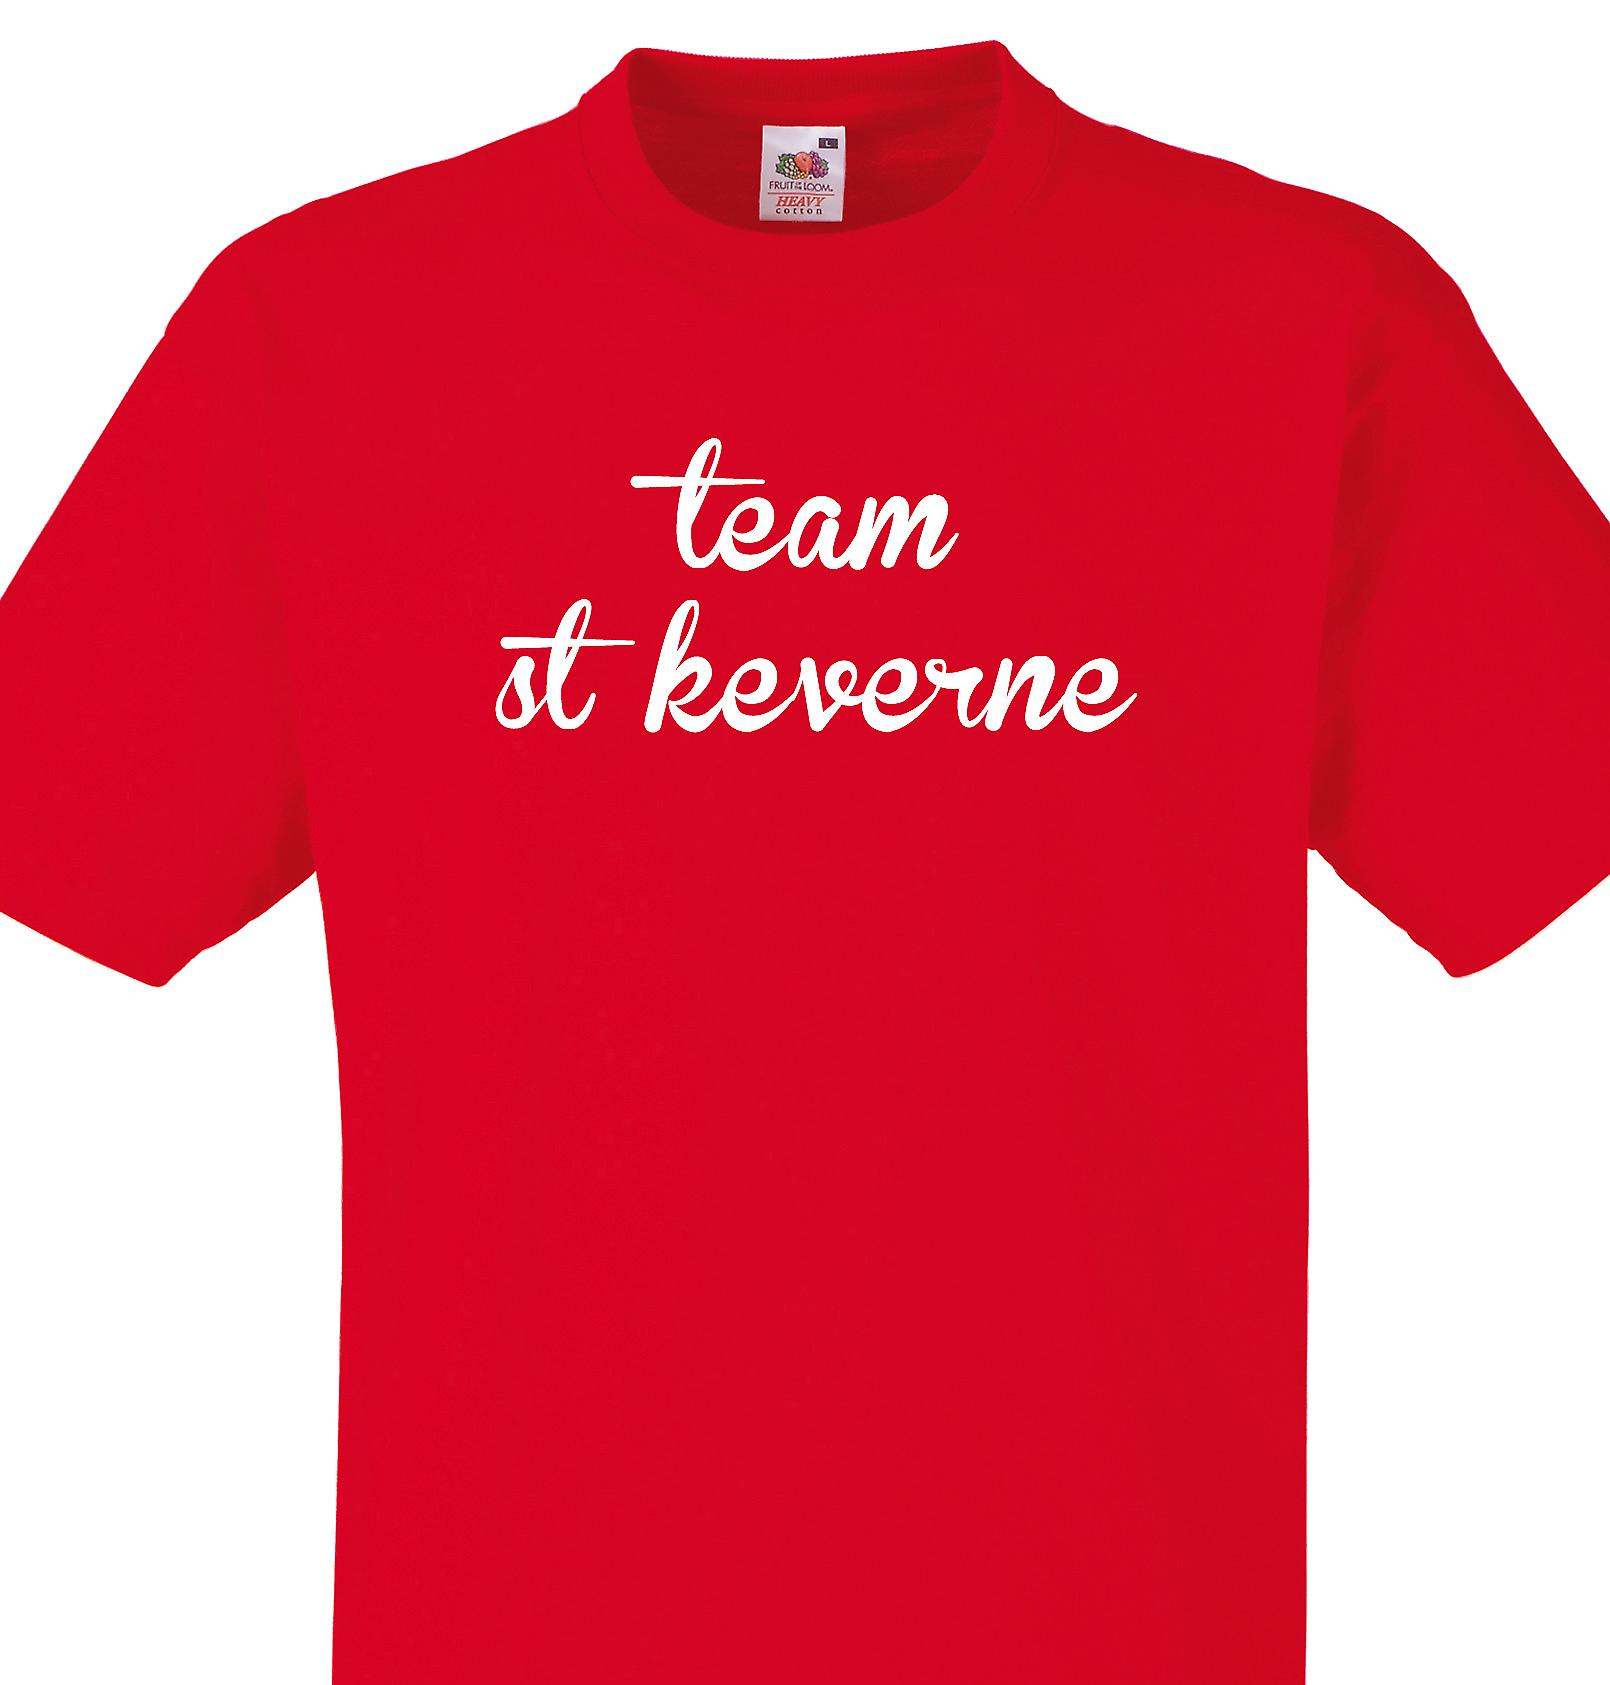 Team St keverne Red T shirt